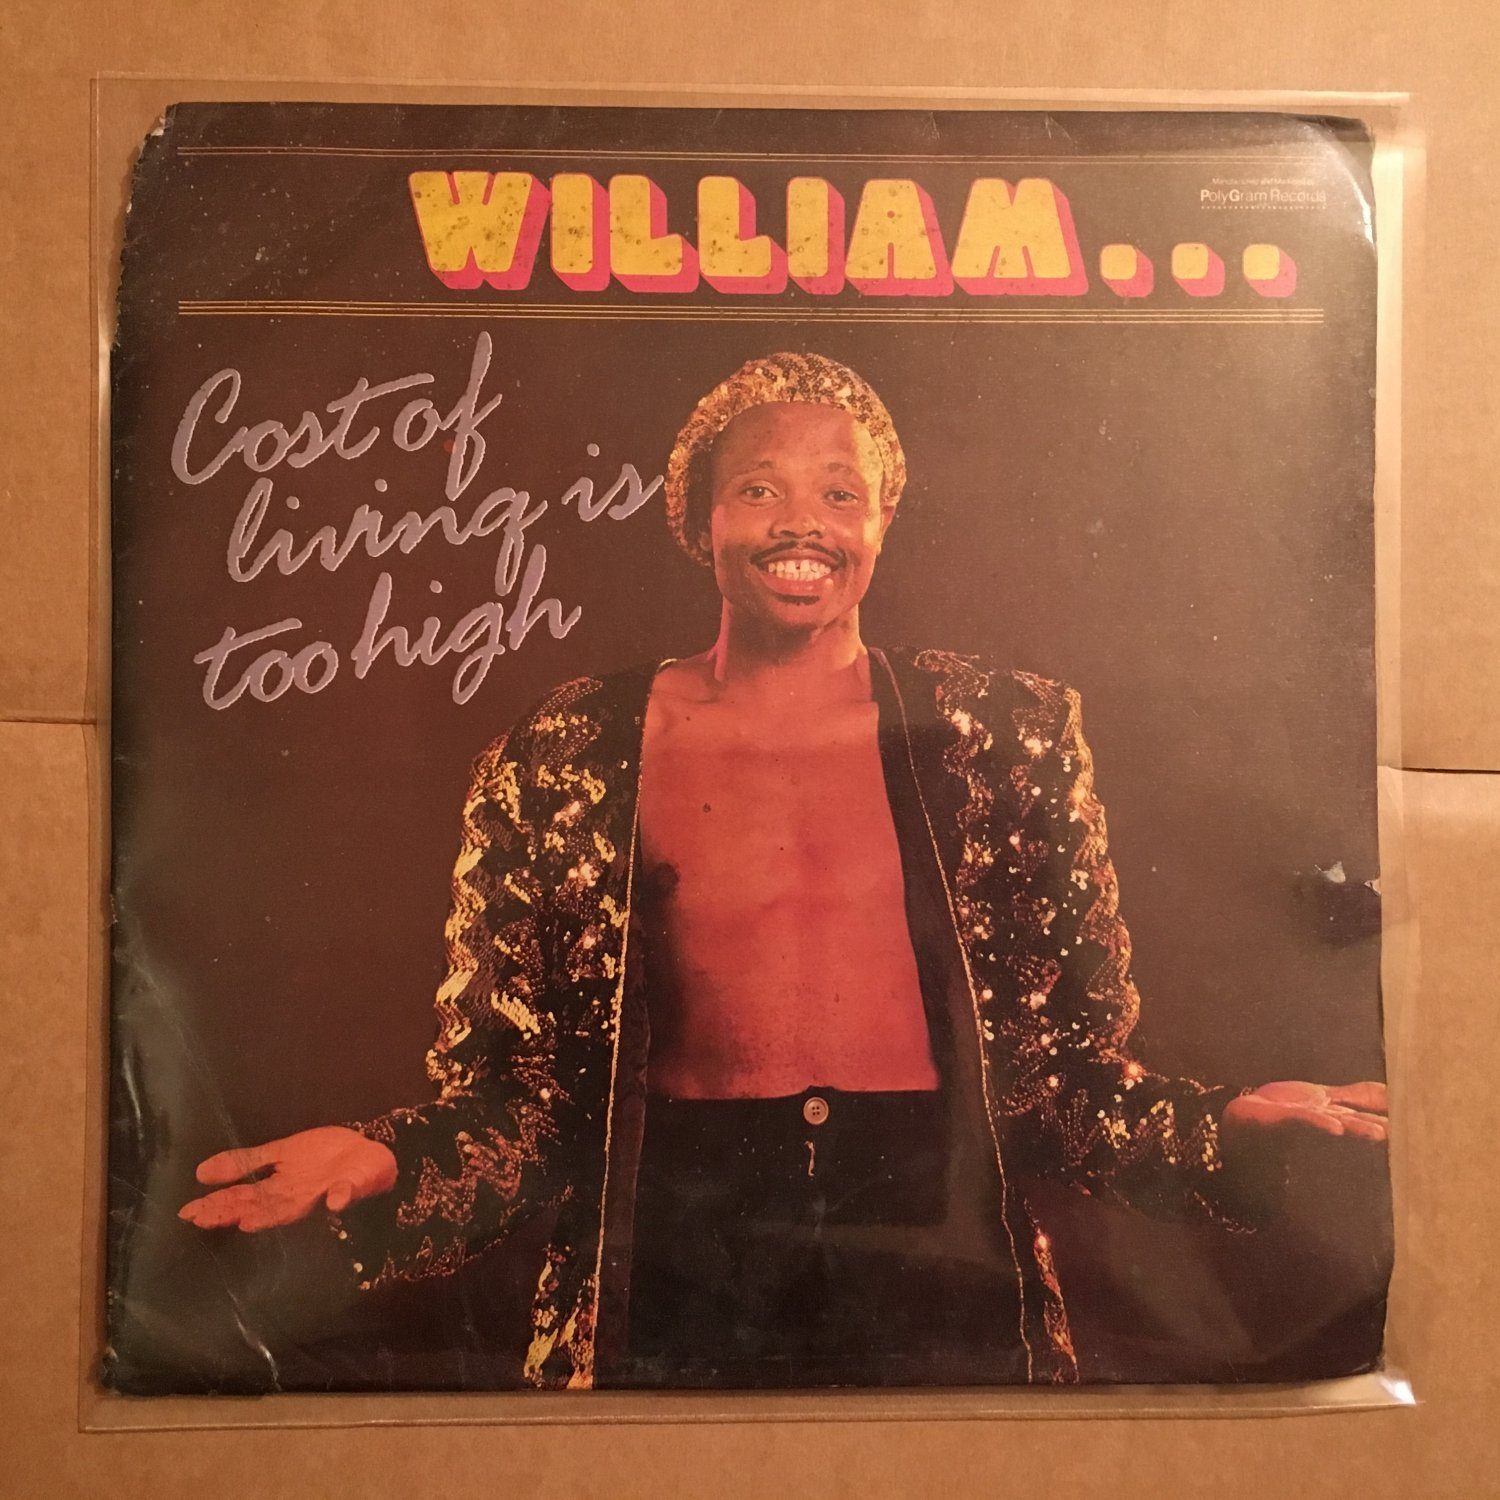 WILLIAM LP cost of living SOUTH AFRICA DISCO SYNTH FUNK mp3 LISTEN